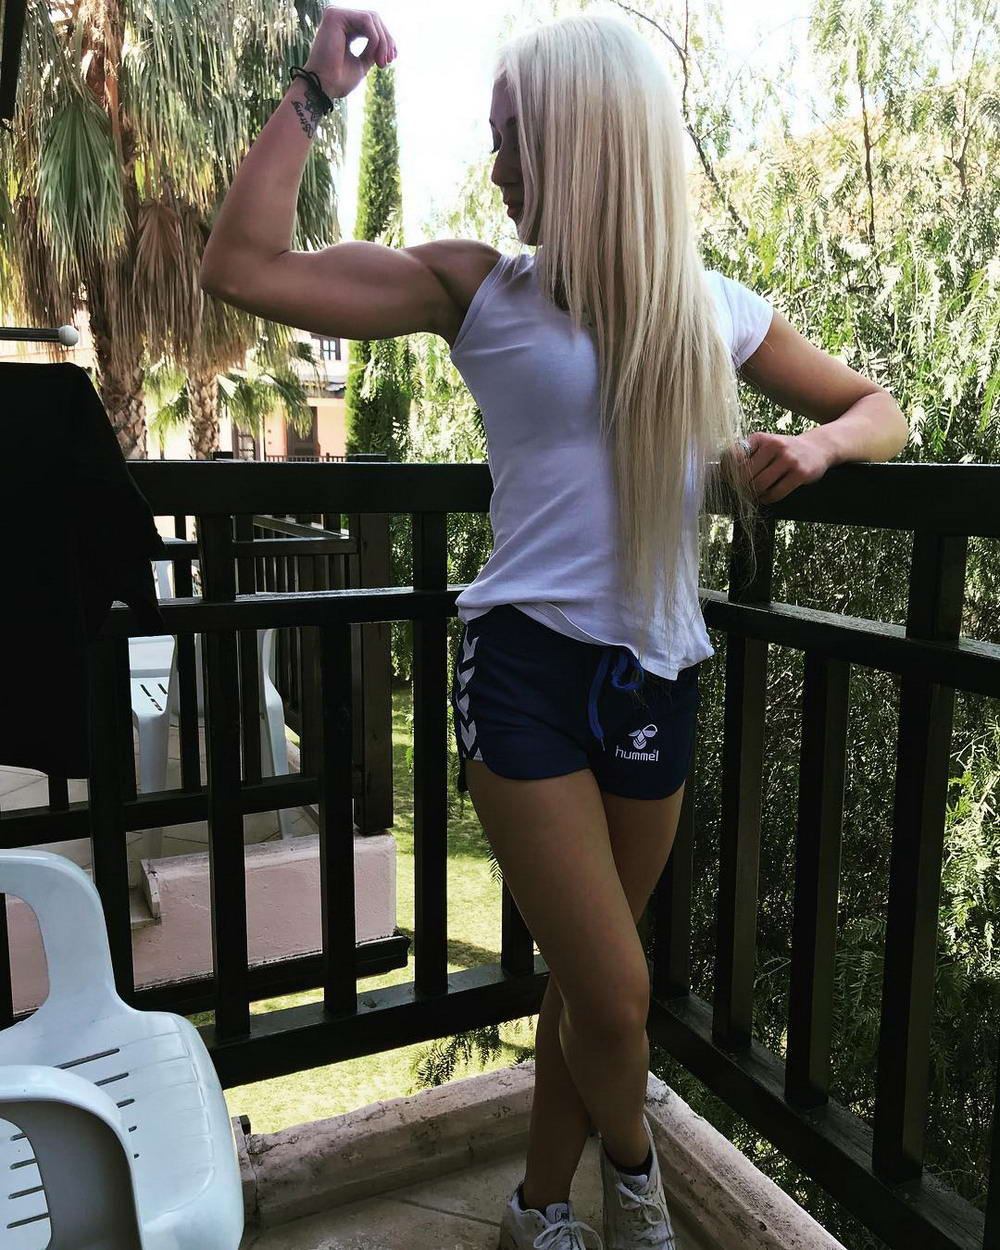 Hot Fit Girls Proud Their Sporty Figure (39 Photos)